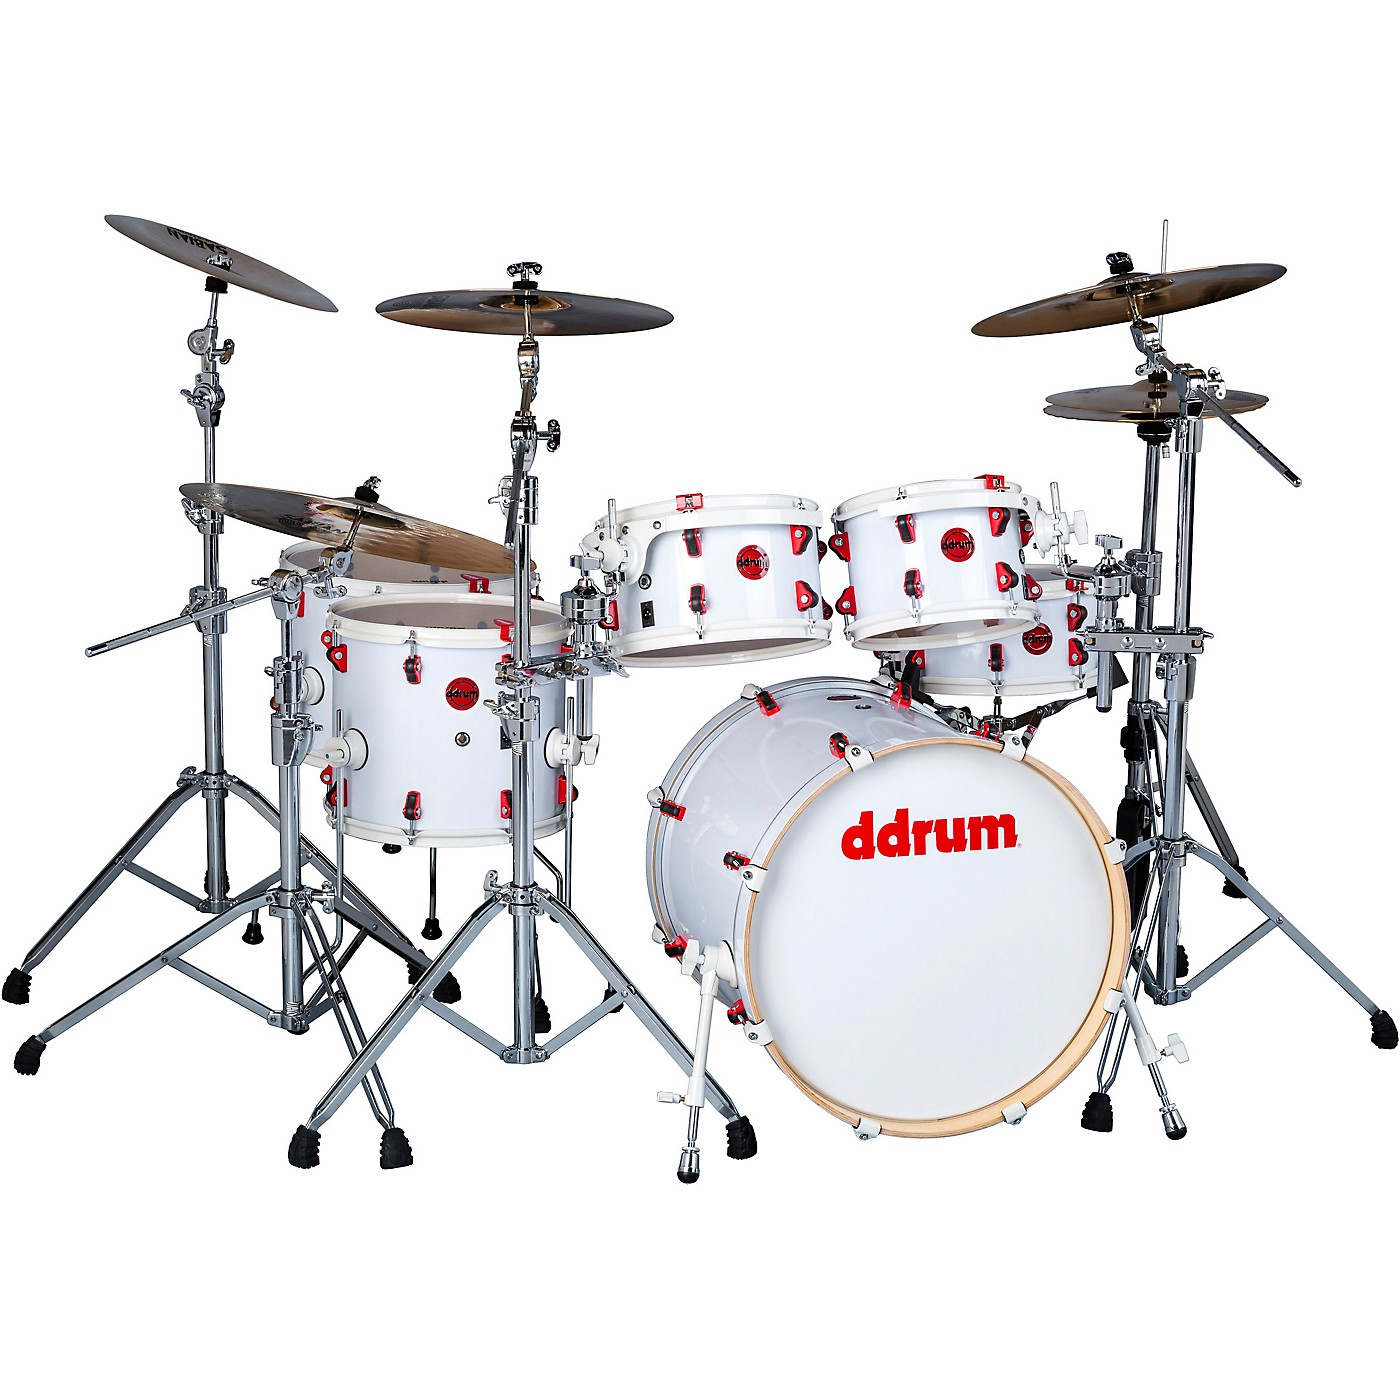 ddrum Hybrid Acoustic/Electric 6-piece Shell Pack thumbnail